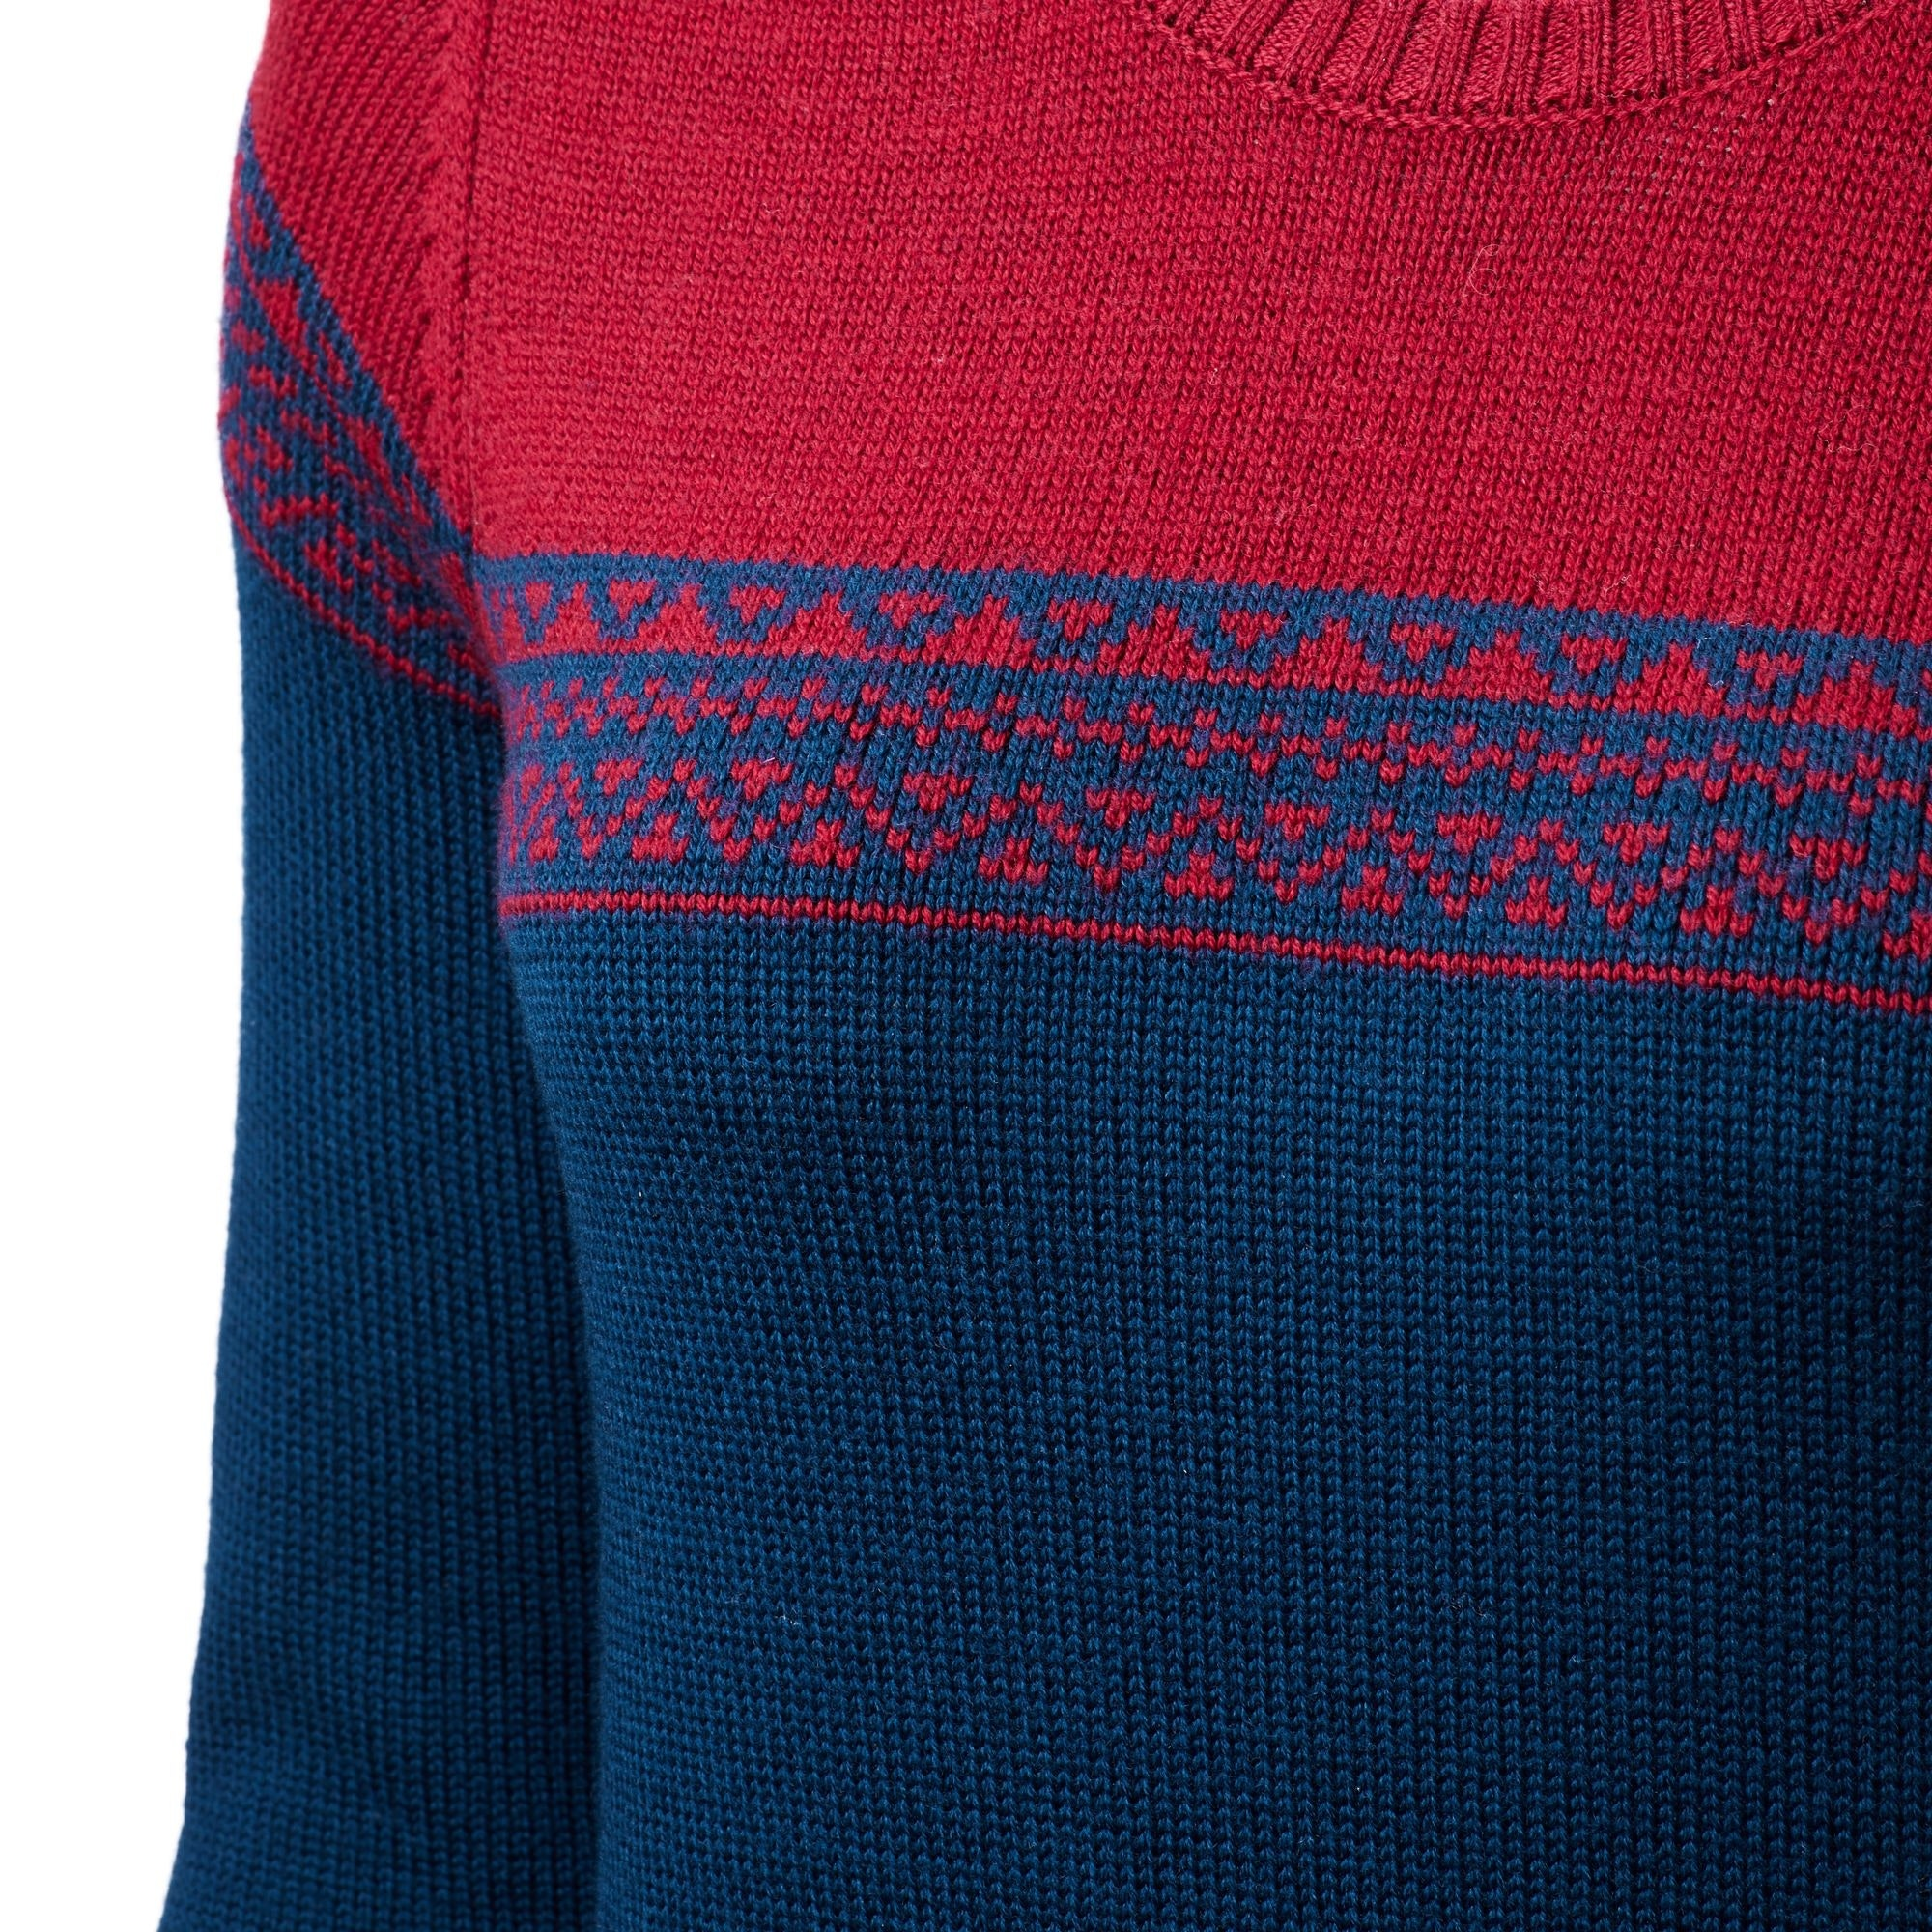 Kathmandu-Winterburn-Merino-Warm-Casual-Outdoor-Stylish-Knit-Women-039-s-Pullover